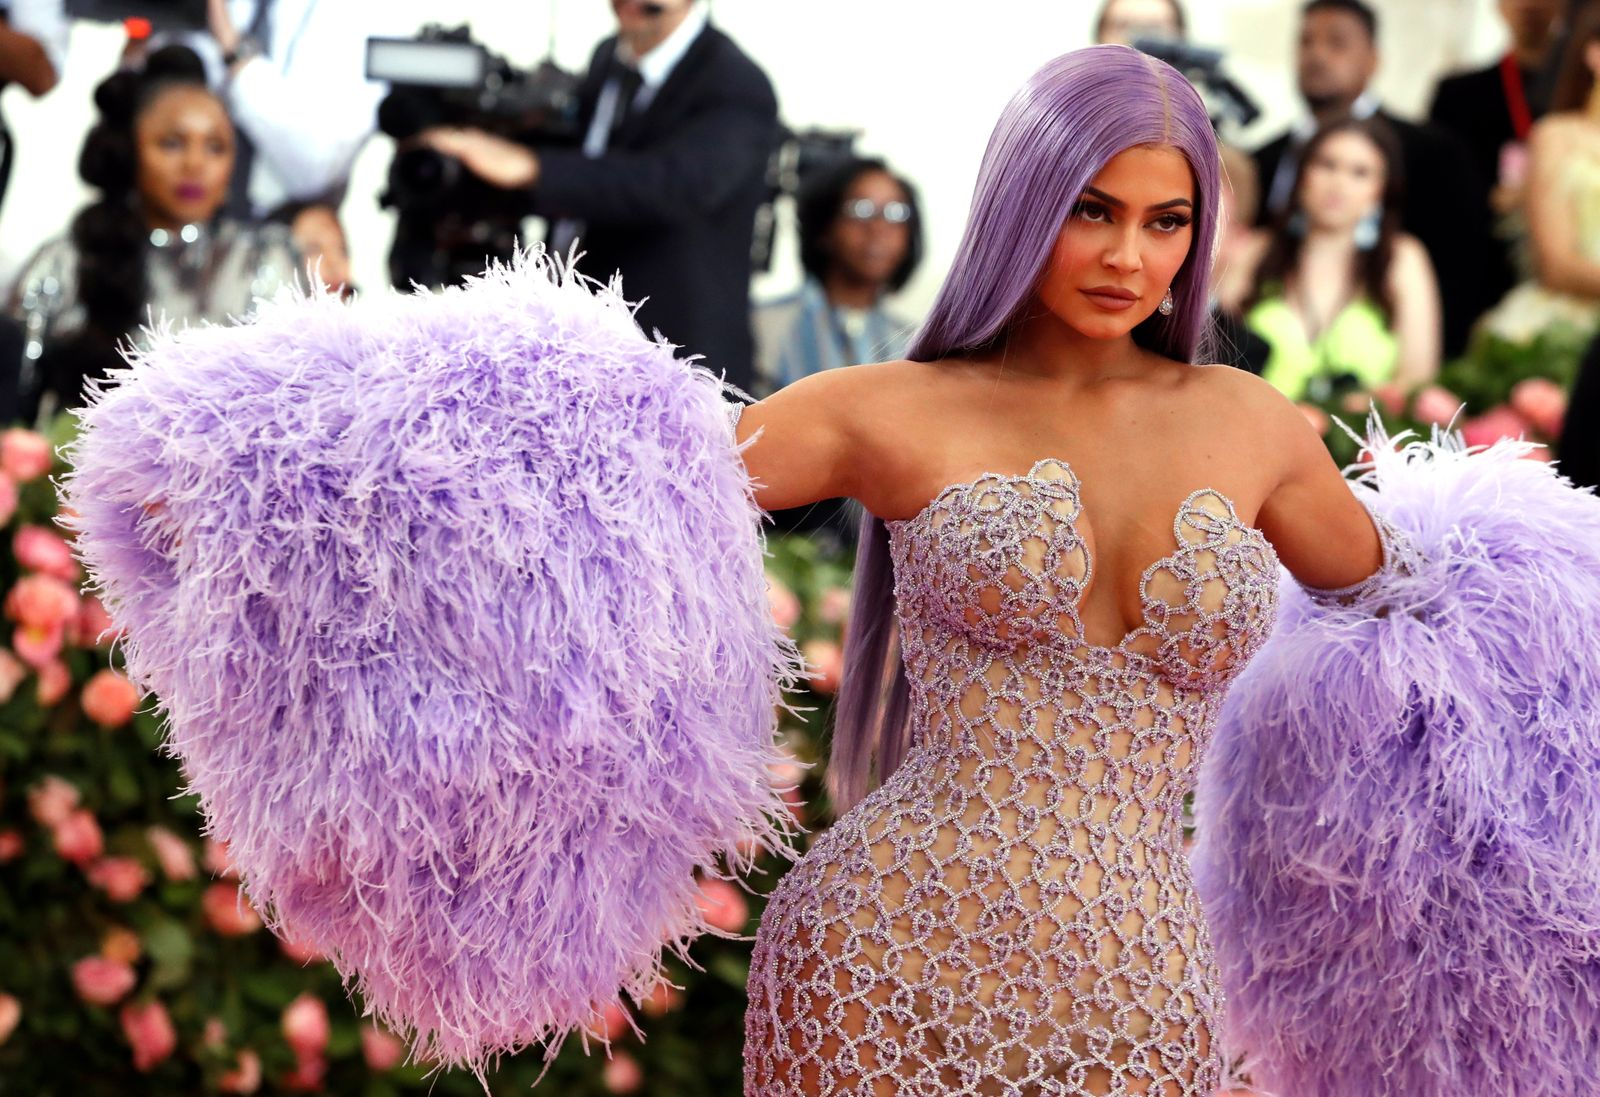 Metropolitan Museum of Art Costume Institute Gala - Met Gala - Camp: Notes on Fashion- Arrivals - New York City, U.S. ? May 6, 2019 -Kylie Jenner